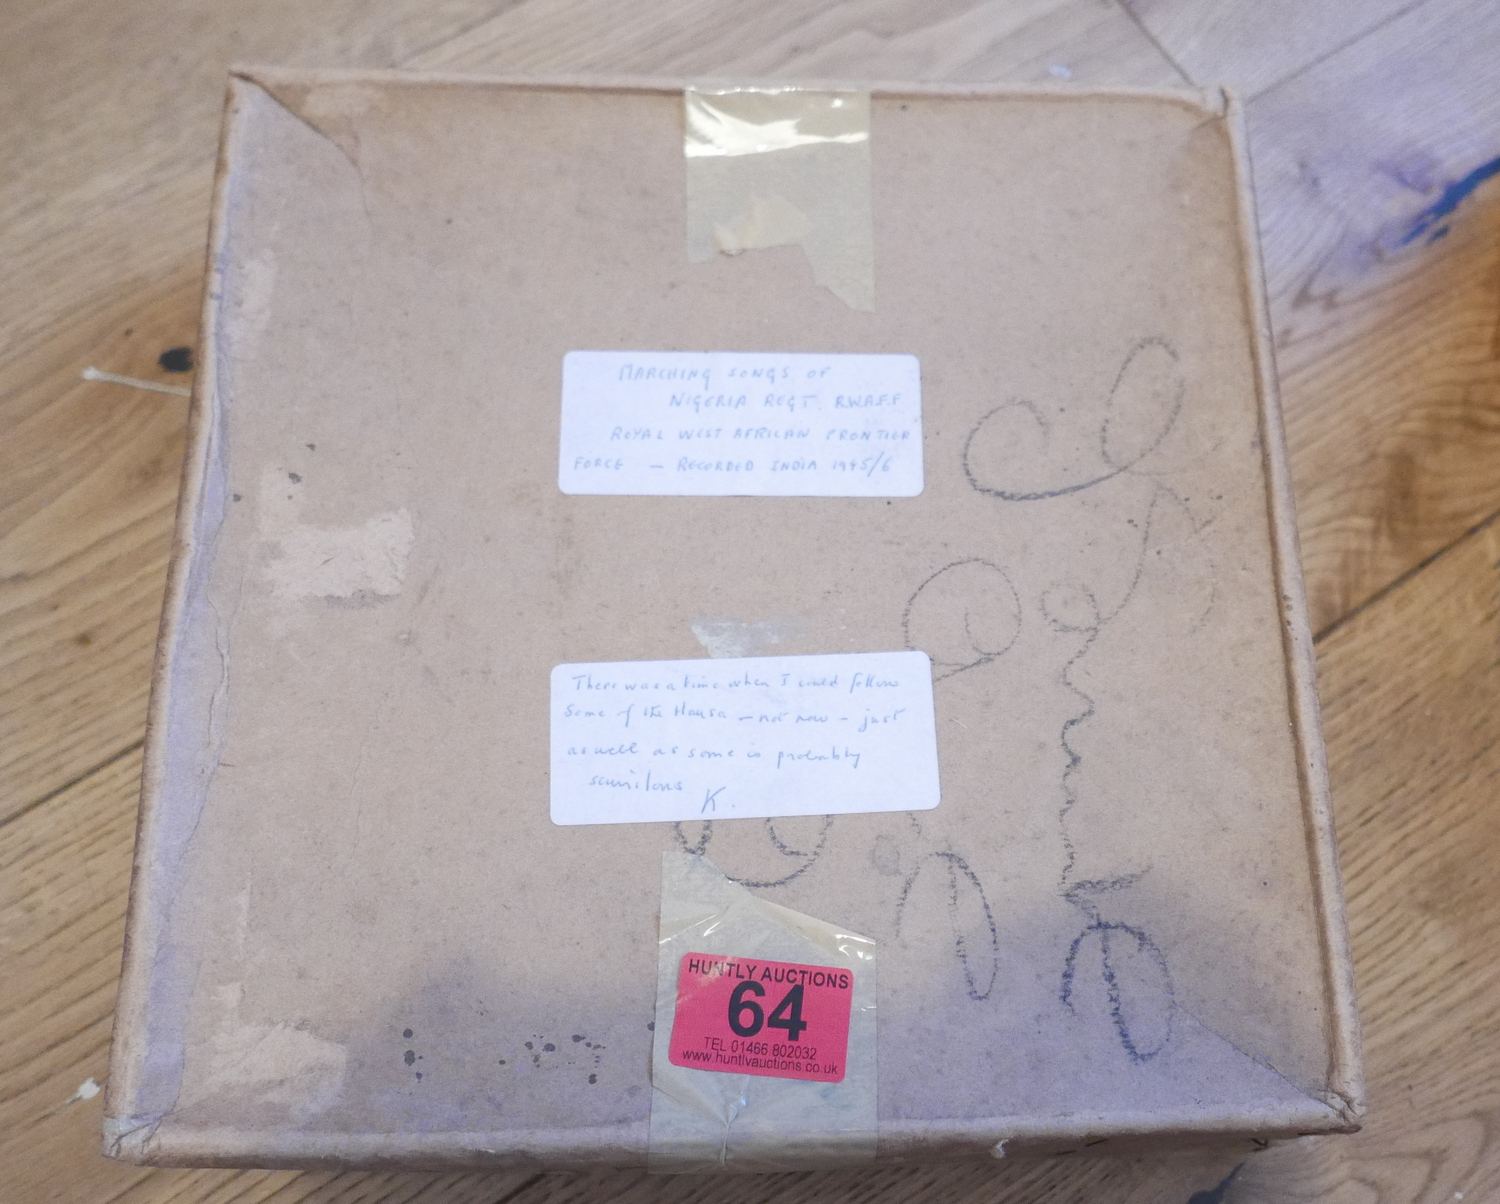 Lot 64 - Boxed Set of 6 (78) Records Marching Songs of Nigerian Regt RWAFF recorded India 1945/46.